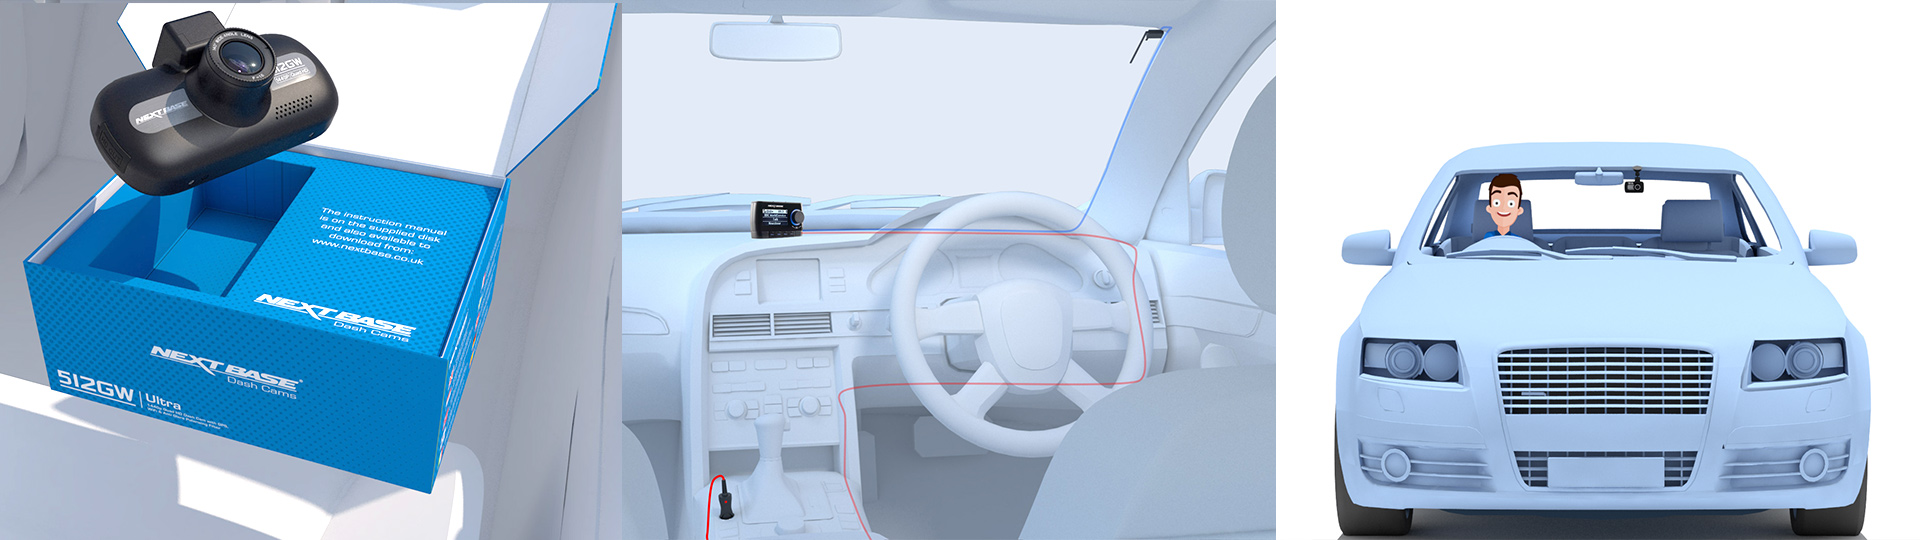 3D Product Visualization of car interior